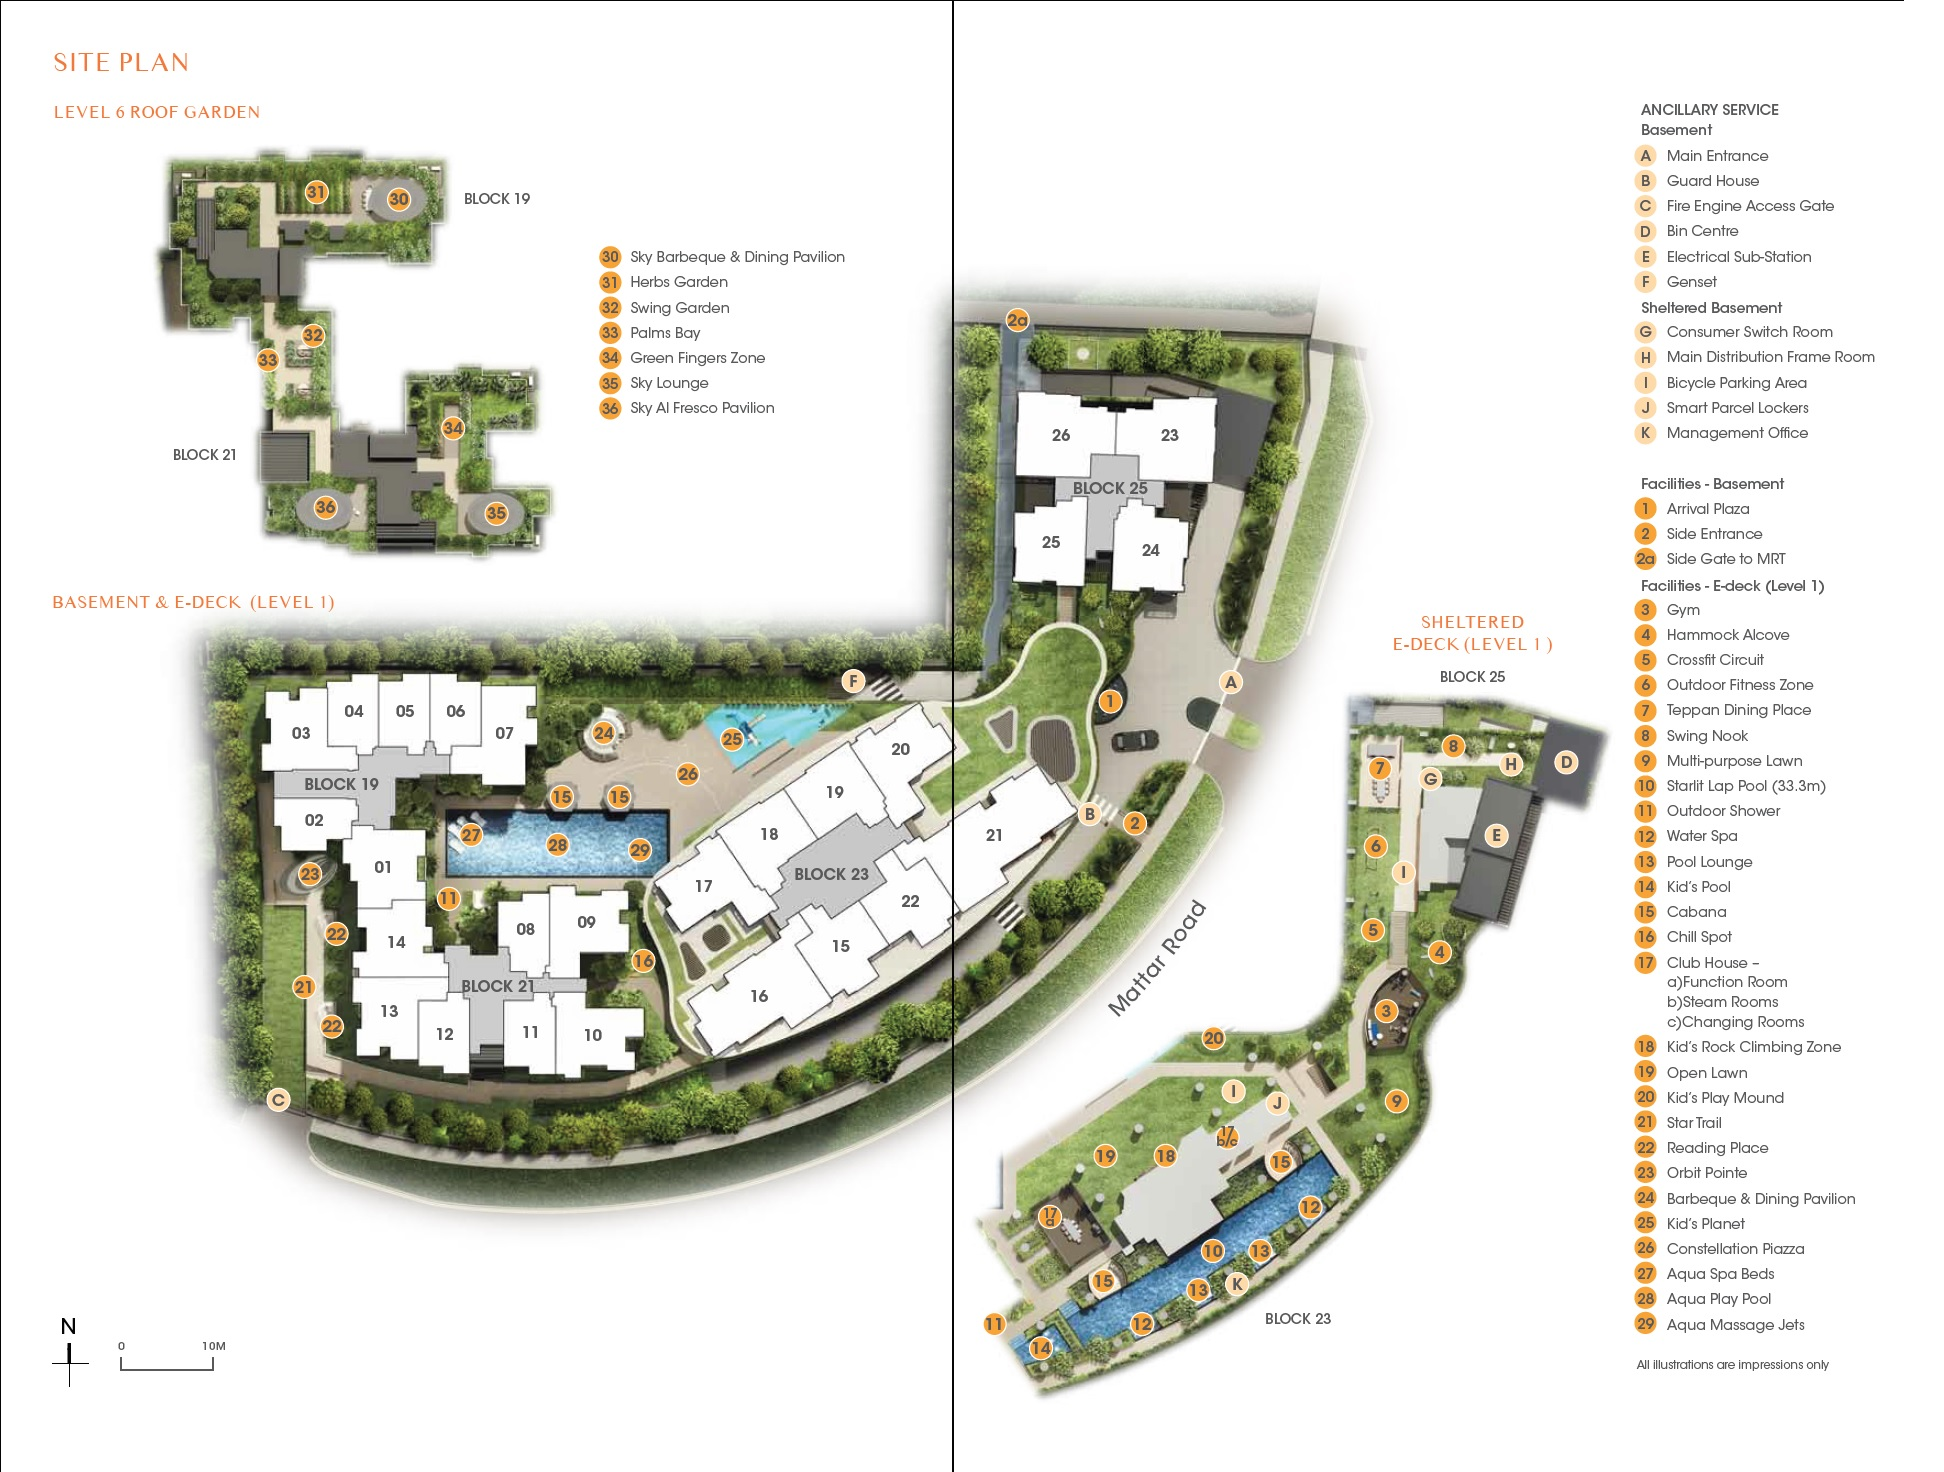 The Antares (星宇轩 ) site plan